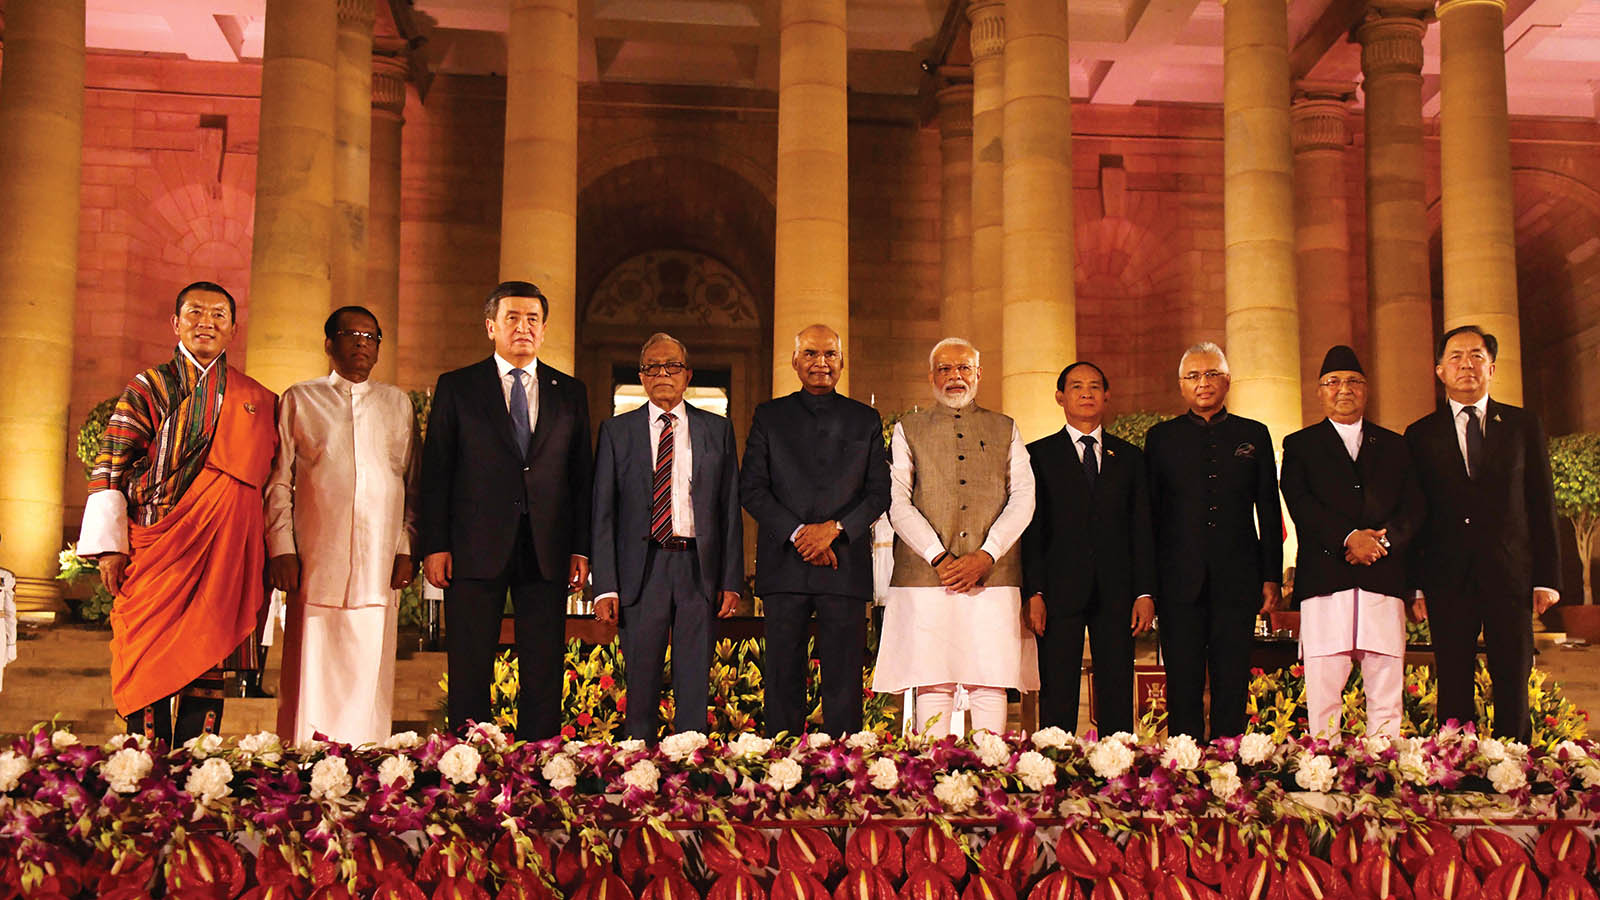 President attends the Swearing-in Ceremony of the  Prime Minister of India for the Second Term